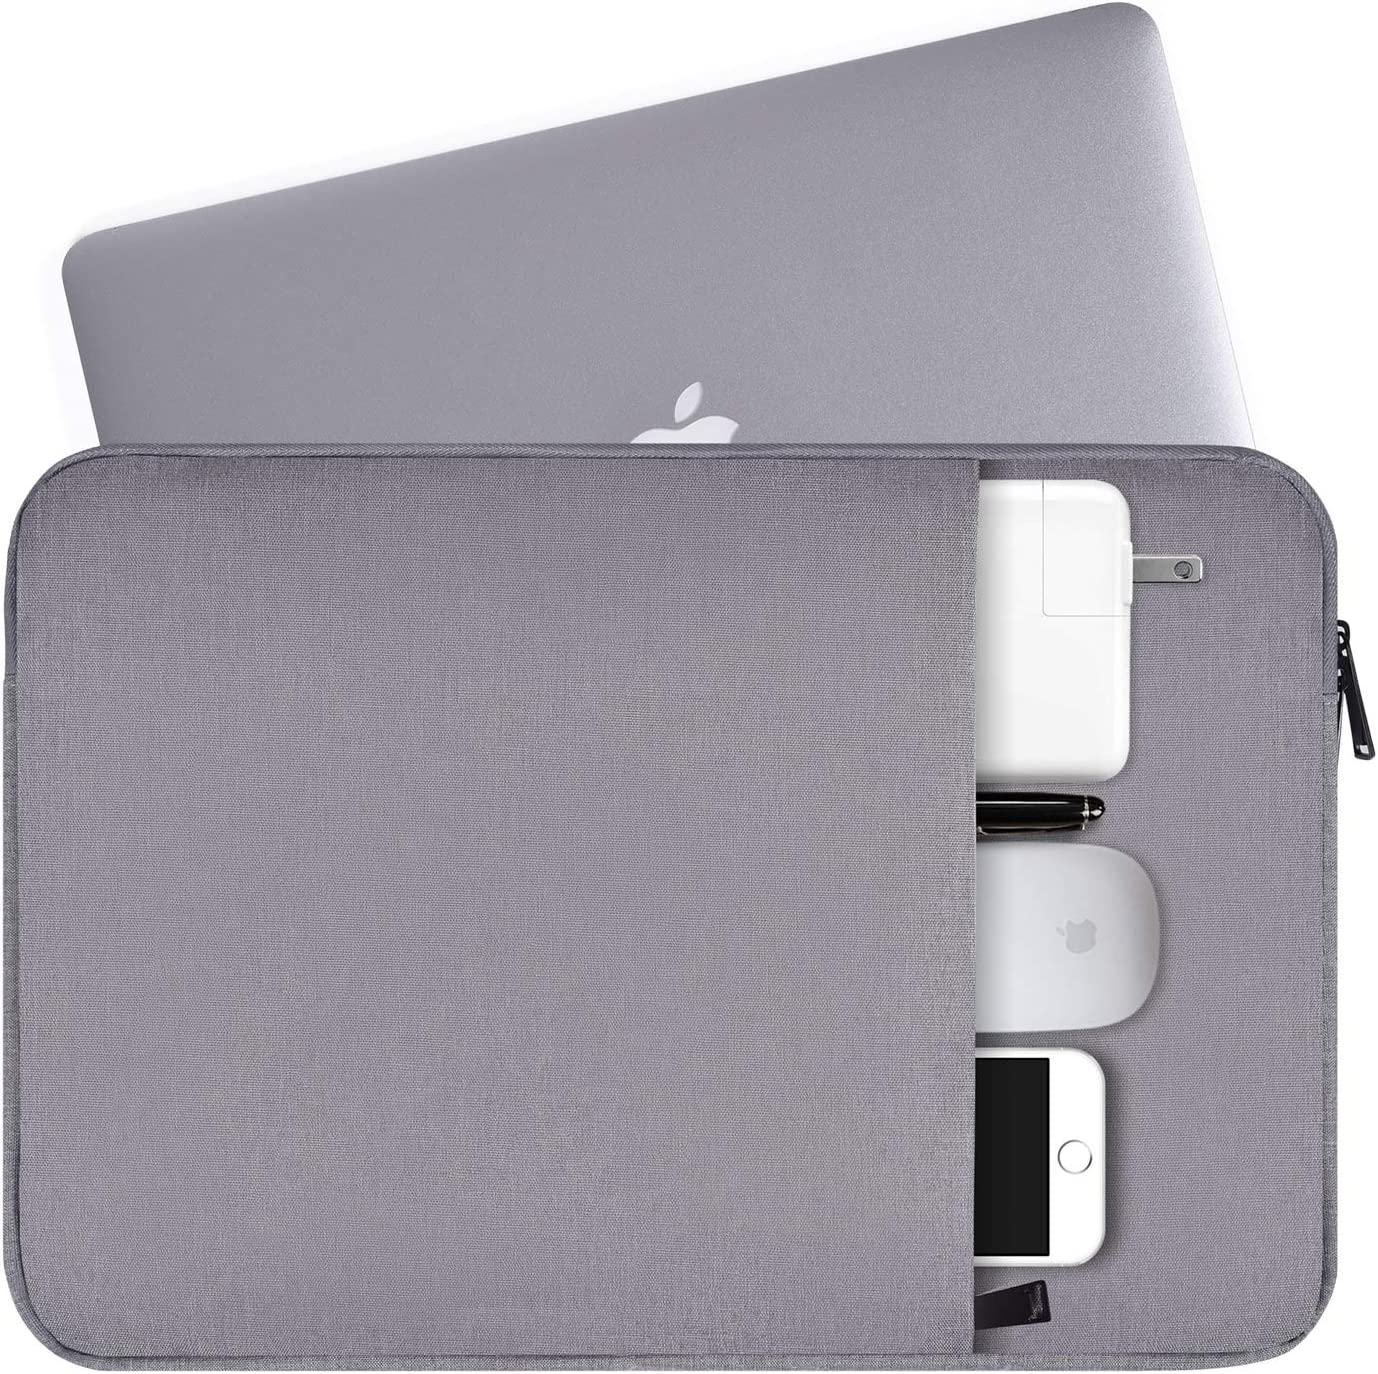 "11-12 Inch Waterproof Laptop Sleeve Case Compatible Acer Chromebook R 11,HP Chromebook 11,ASUS Chromebook 11.6,Samsung Chromebook 3,11.6"" Asus Toshiba HP Samsung Acer Chromebook Laptop Tablet Bag,Grey"